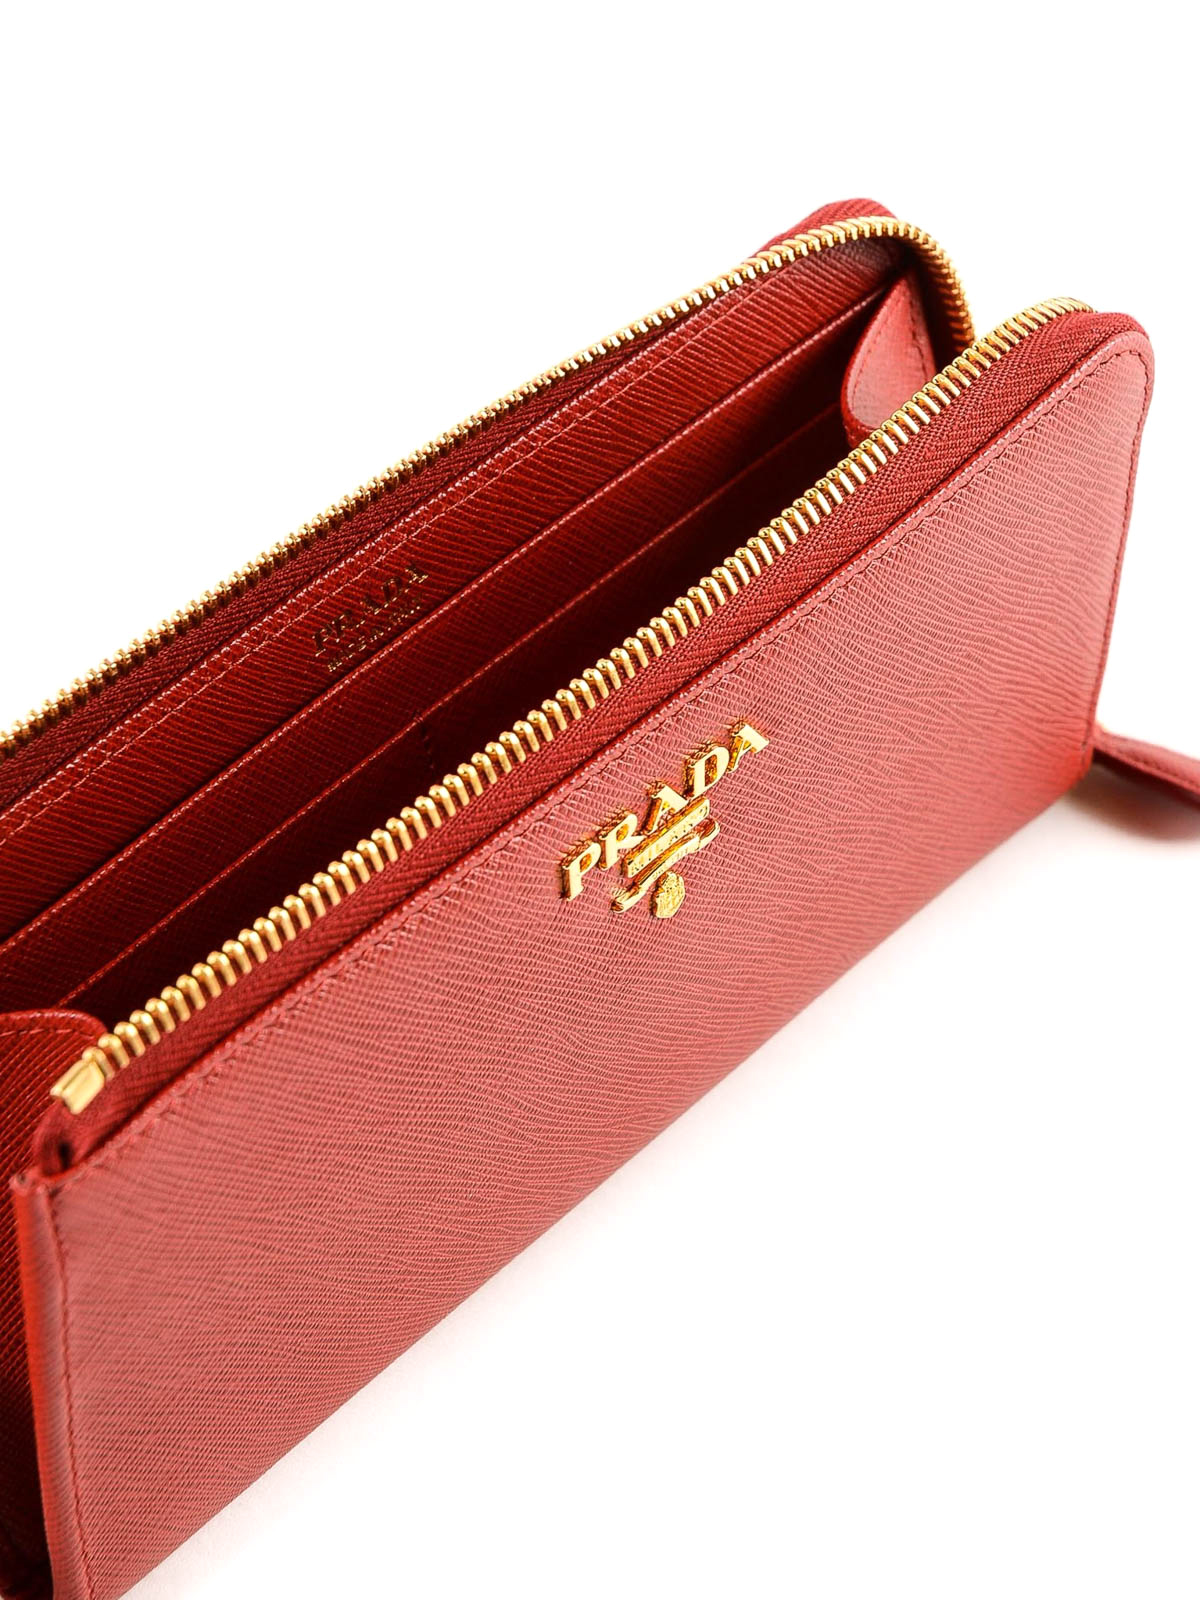 7ffc090bbb1d PRADA buy online Red saffiano leather continental cardholder. PRADA: wallets  & purses ...